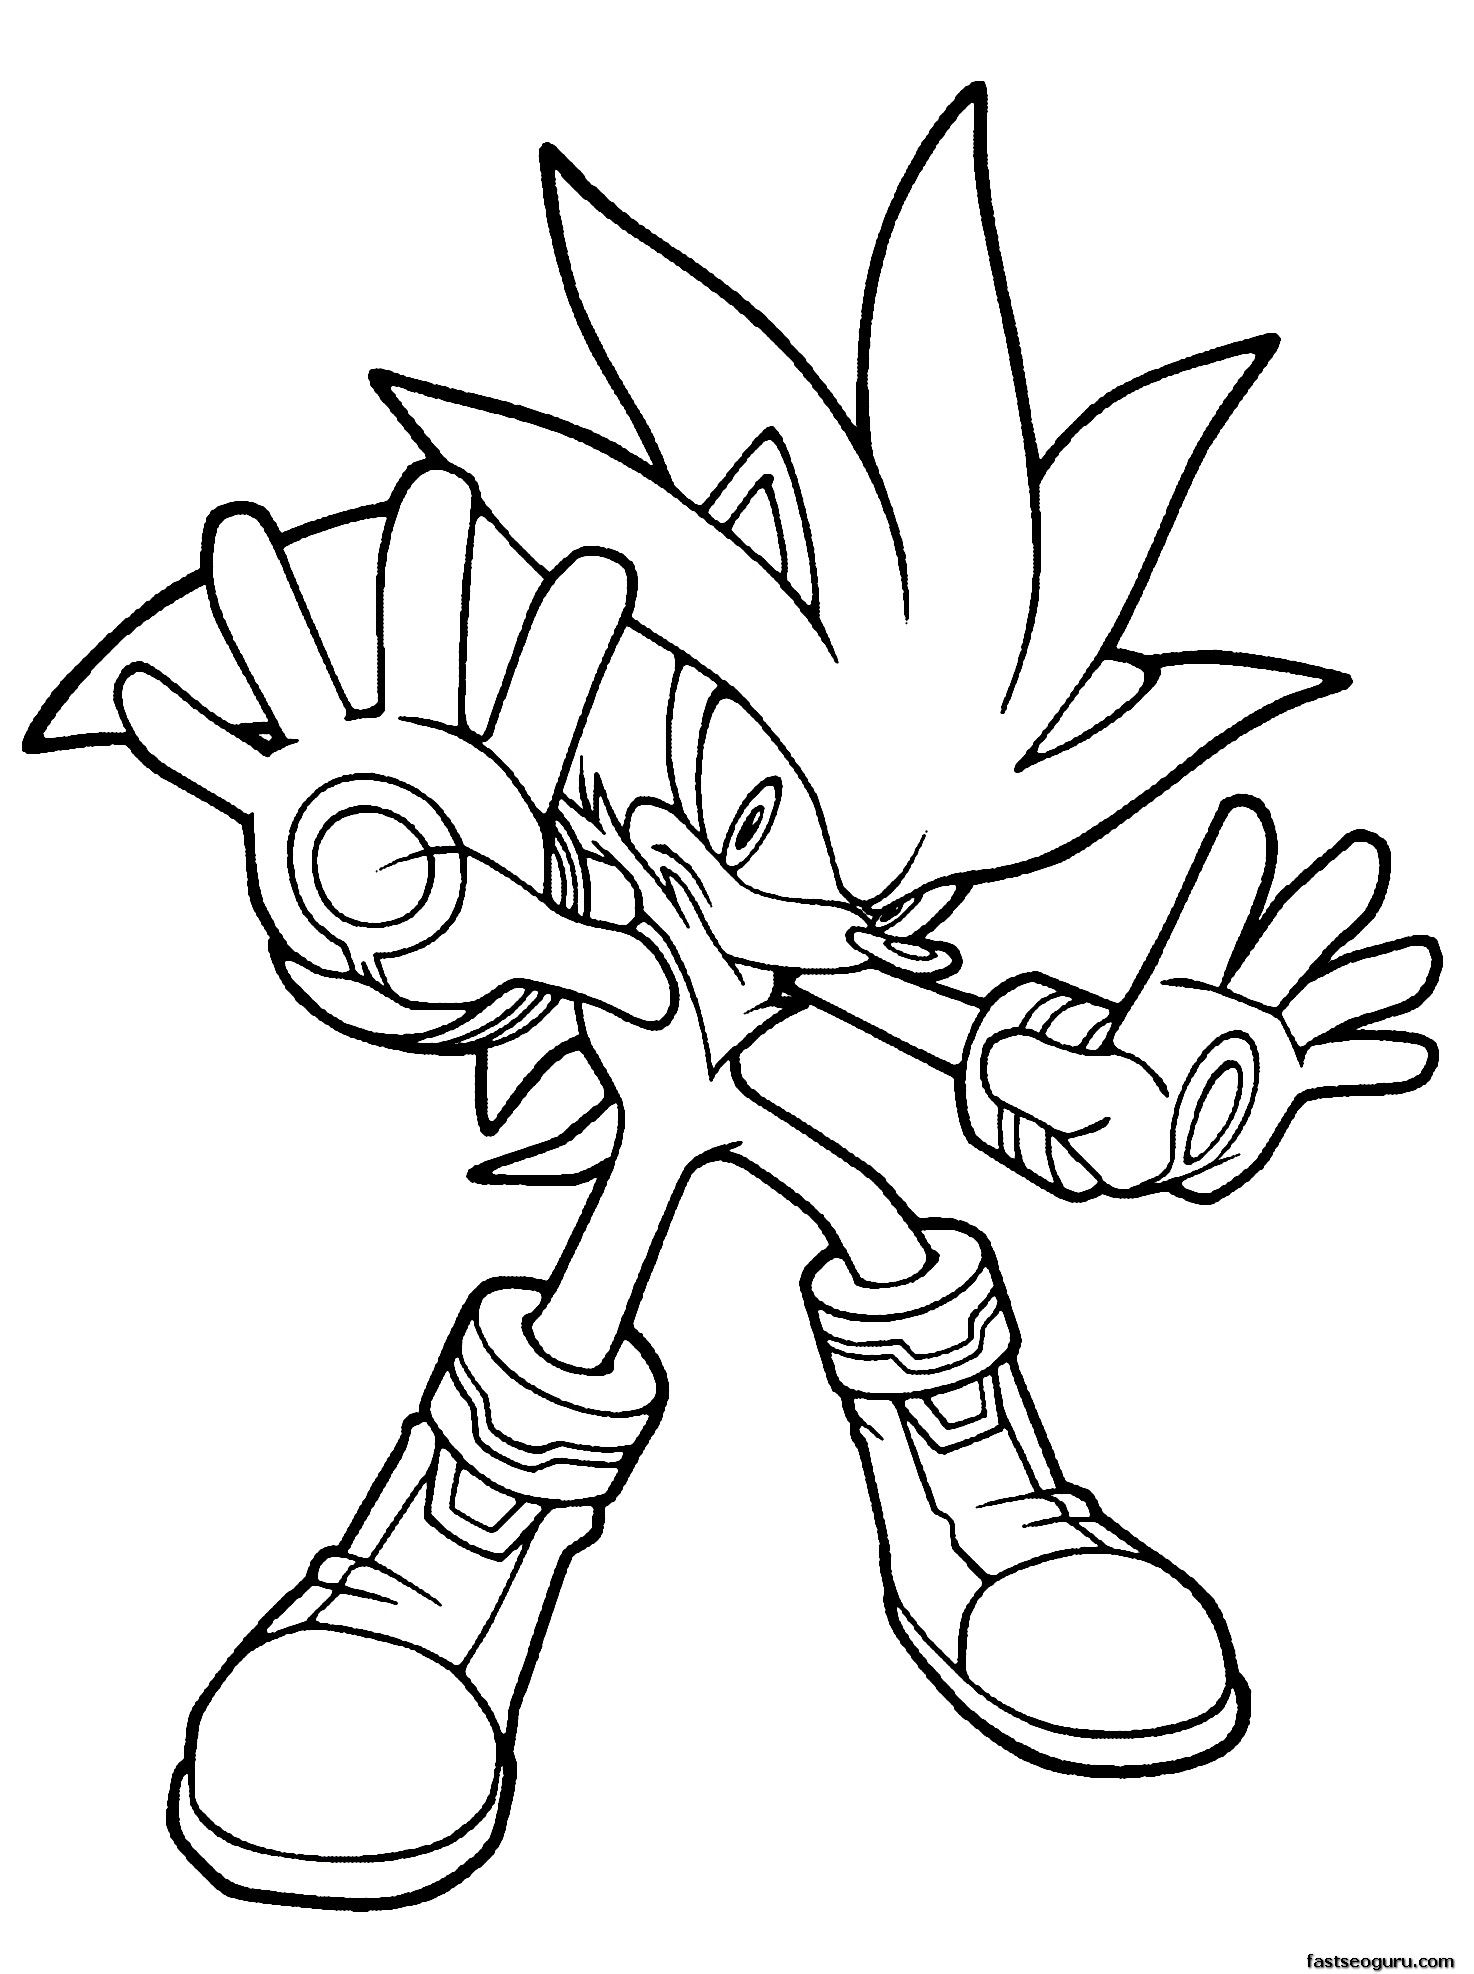 Printable Sonic The Hedgehog Silver Coloring In Sheets Hedgehog Colors Cartoon Coloring Pages Cool Coloring Pages